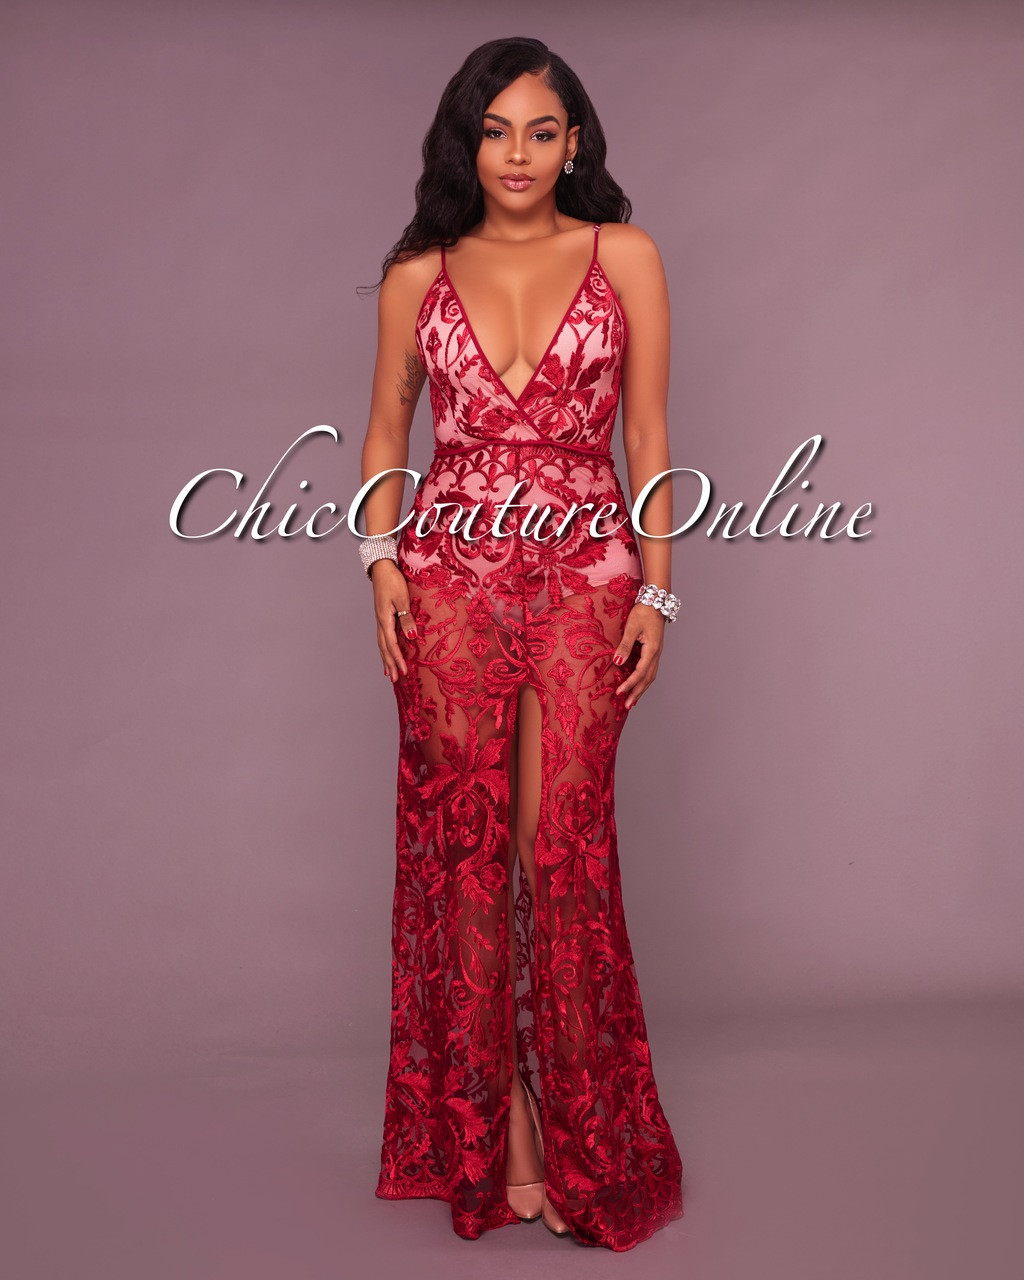 Tarvyn Wine Red Lace Nude Illusion Bodysuit Maxi Dress-1685